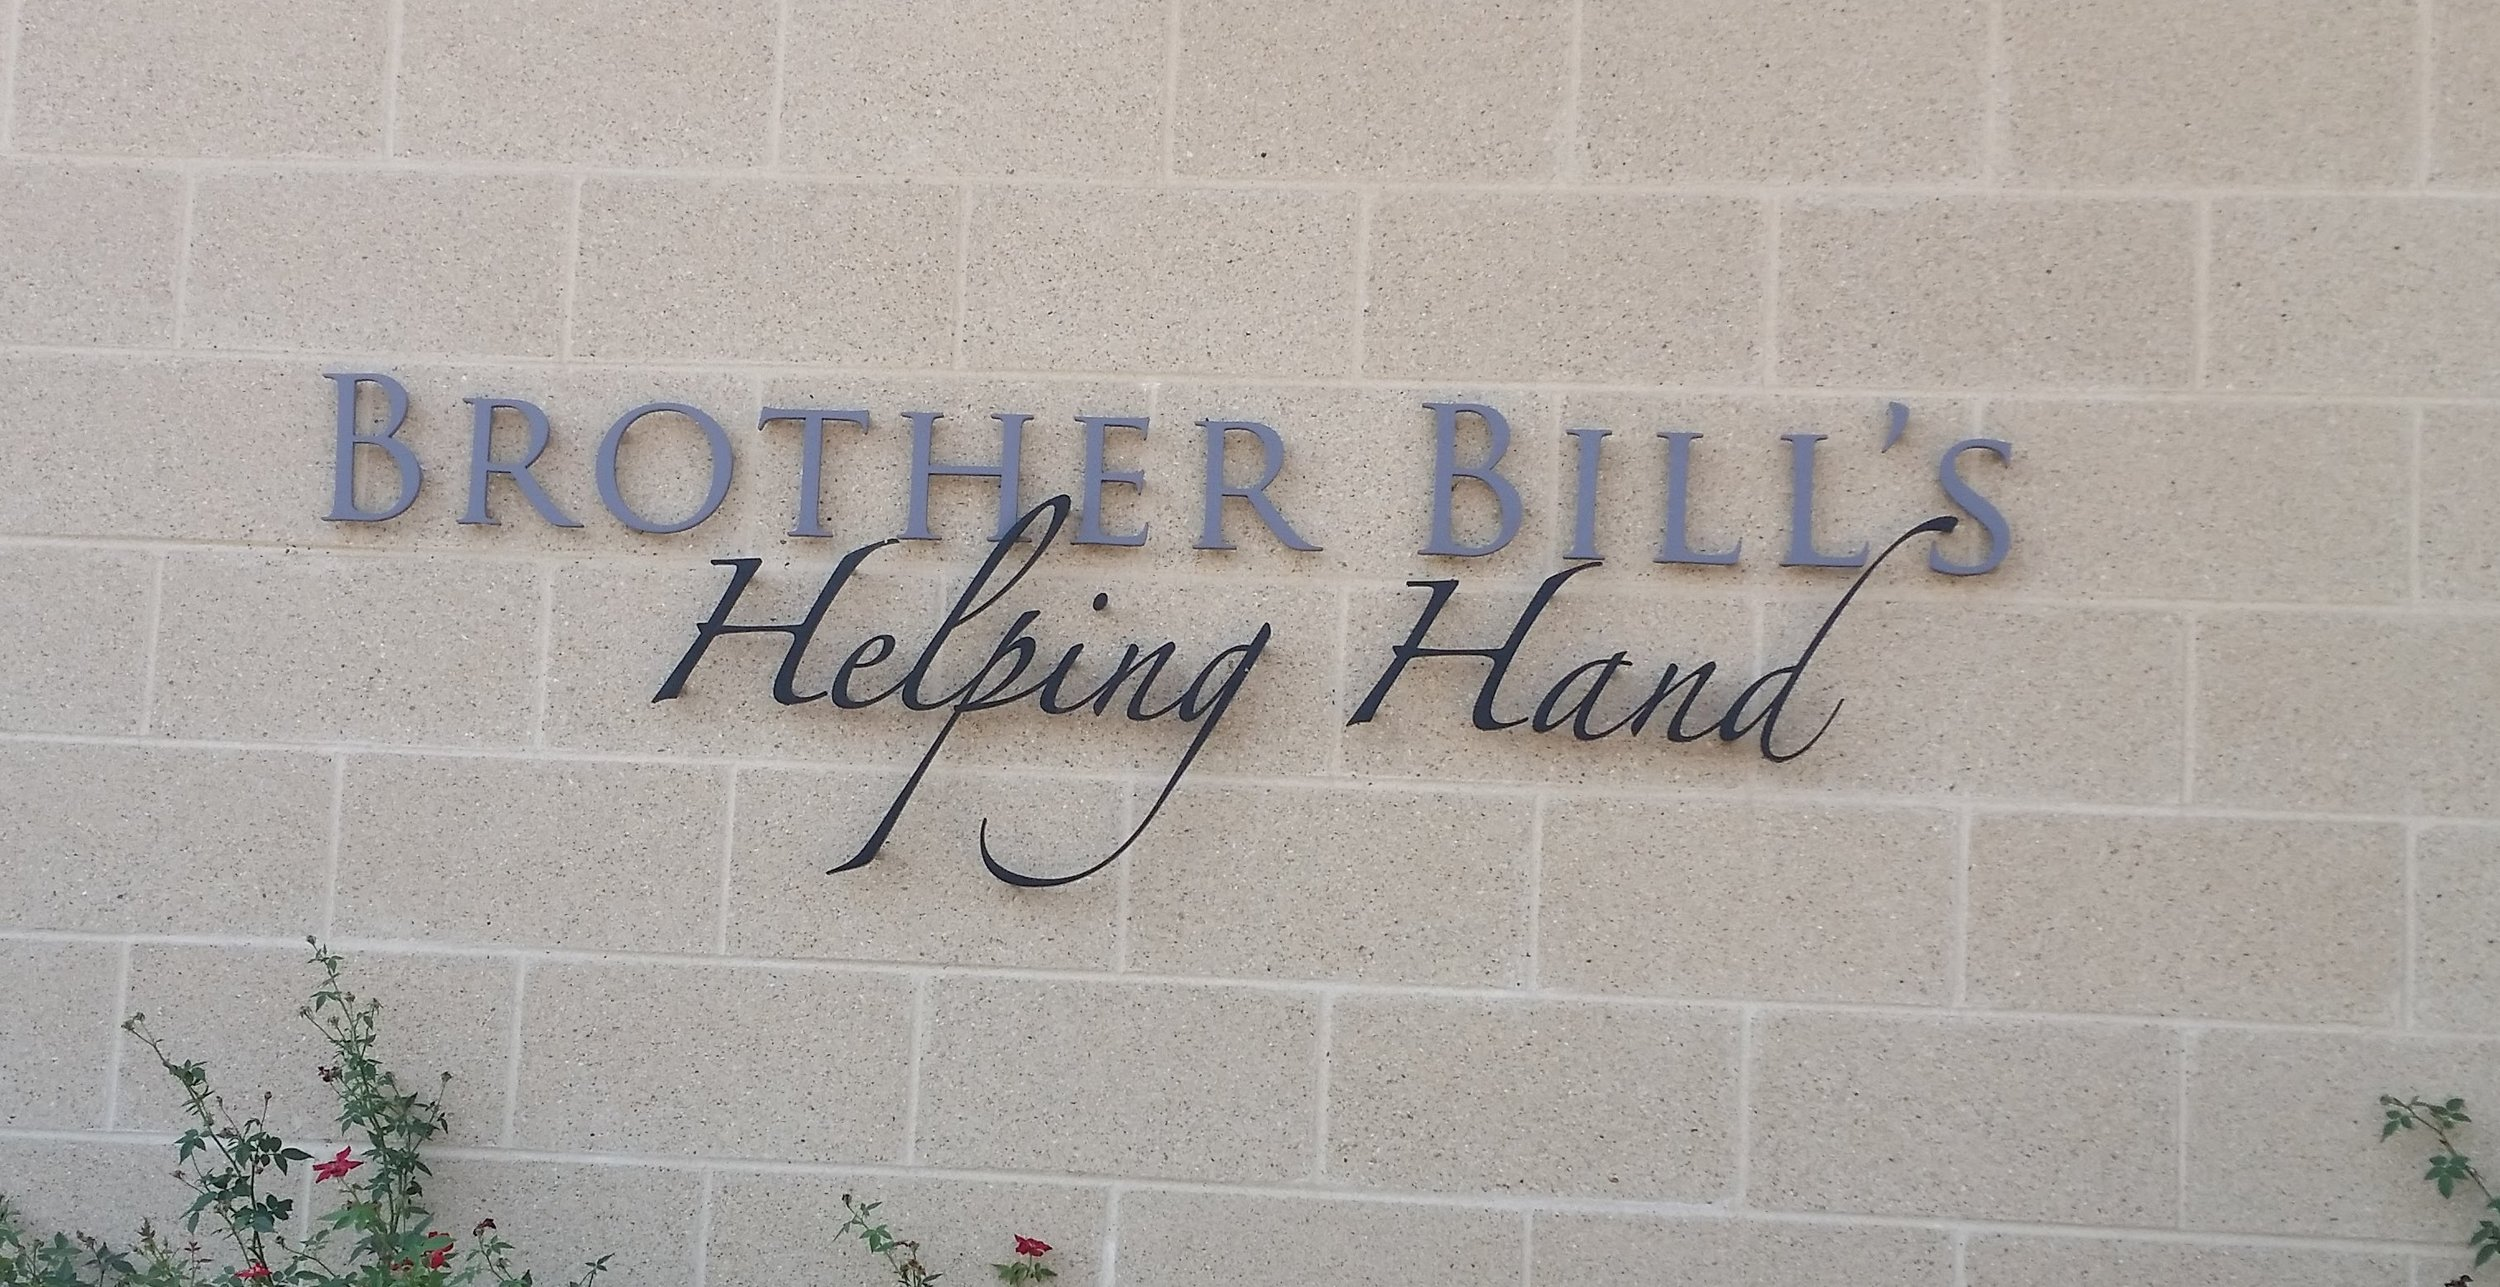 Brother Bill's Helping Hand